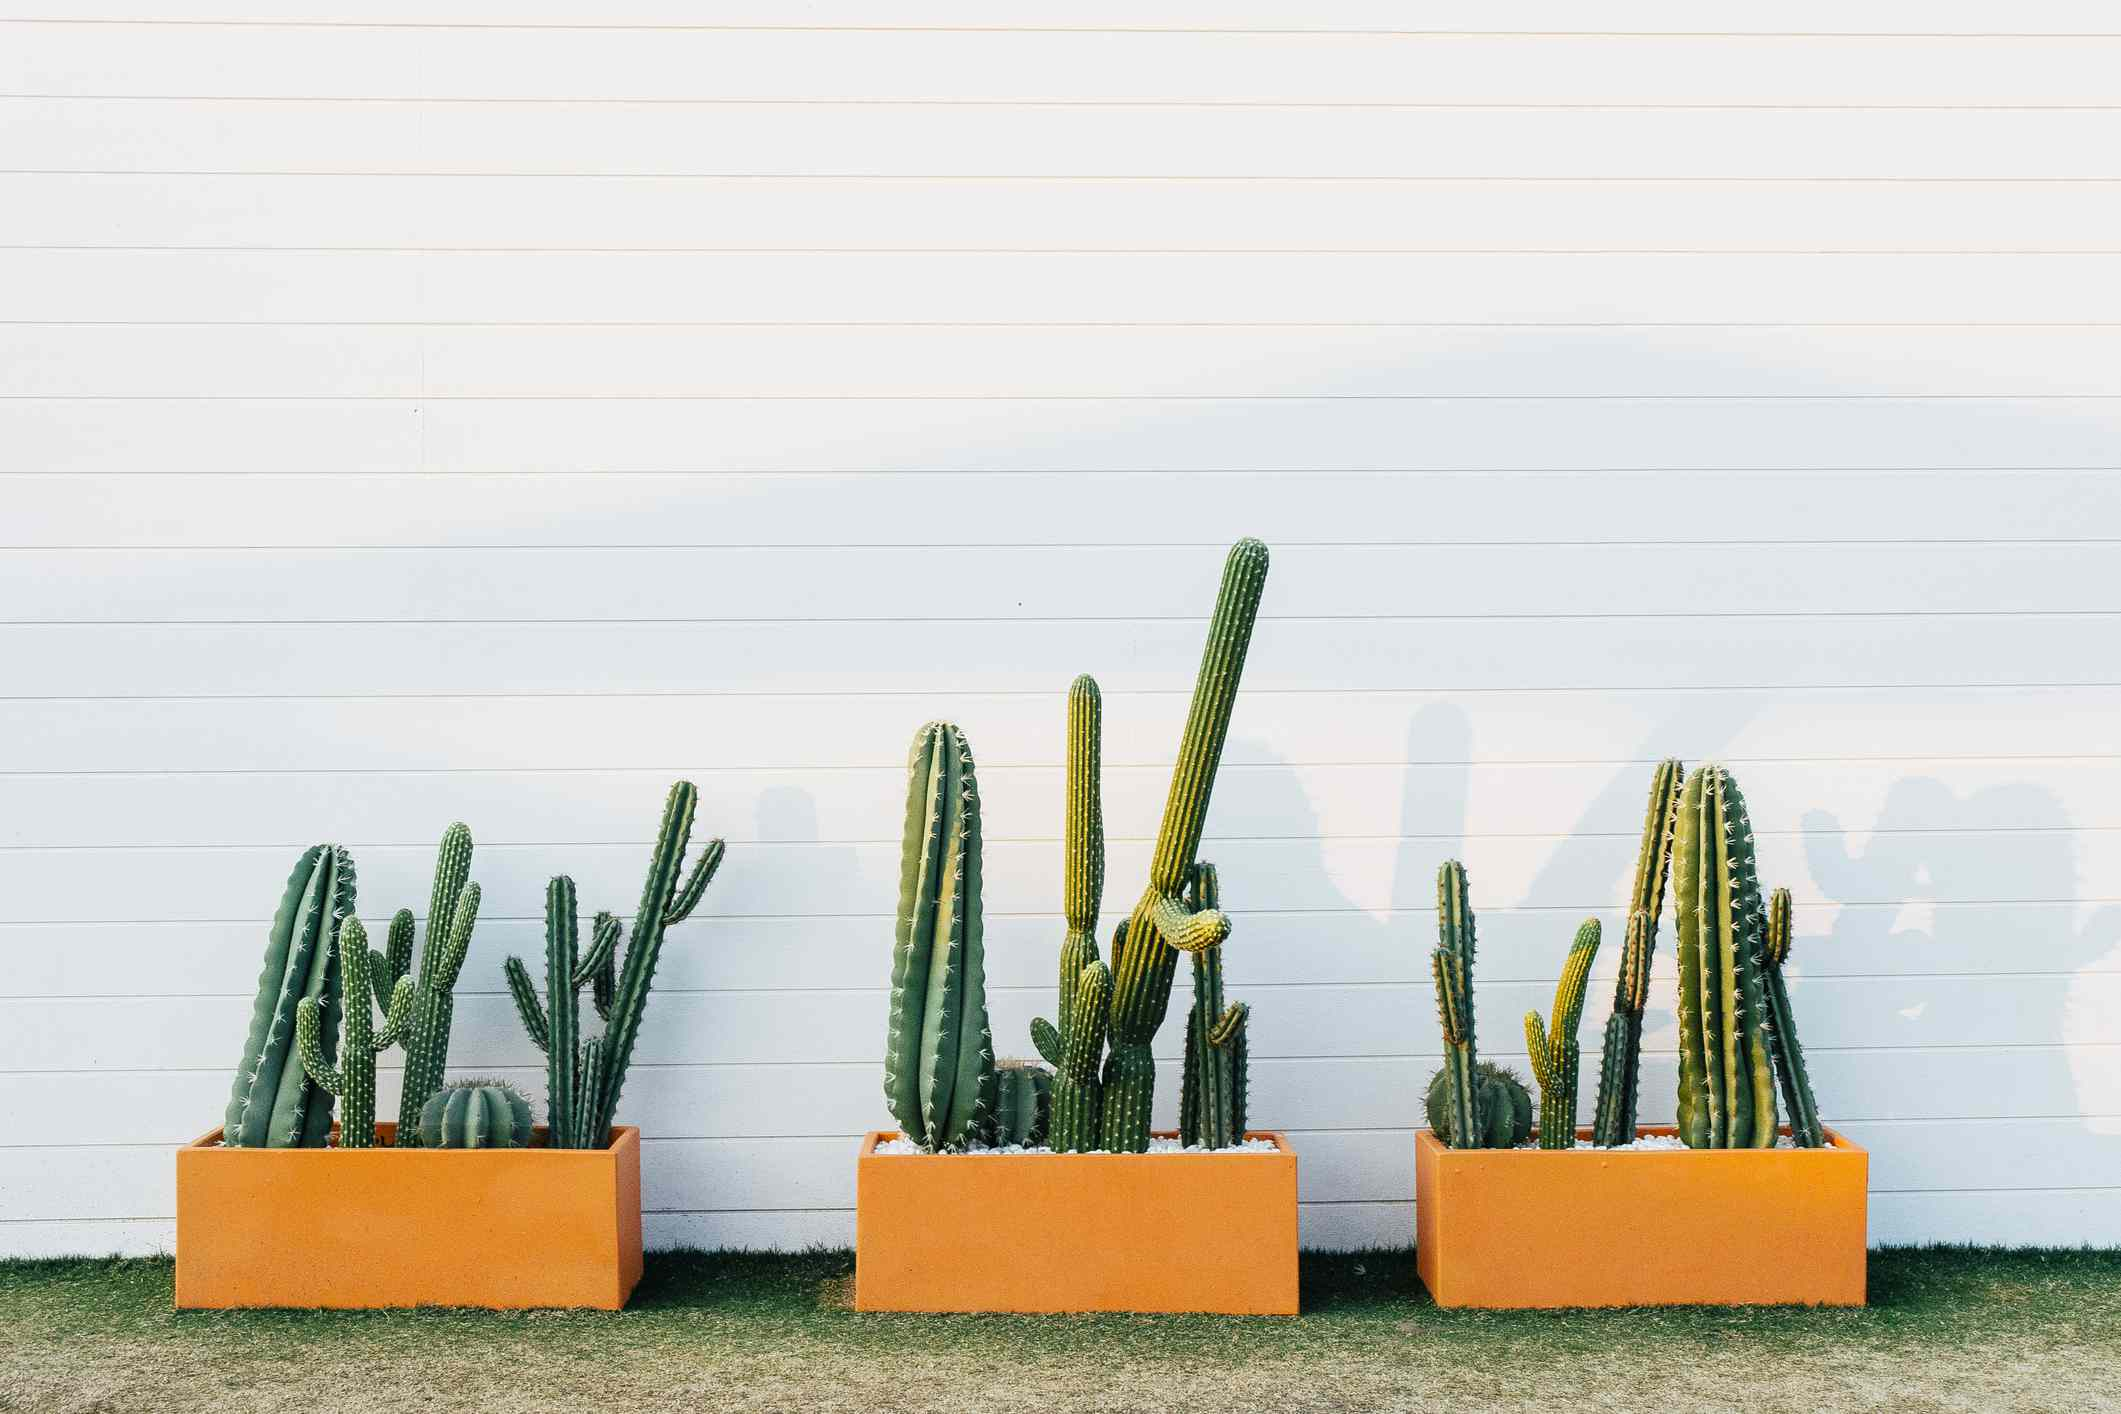 Three Cactus plant boxes against a Mid Century Modern-style white brick wall, in a confined urban space, home garden idea